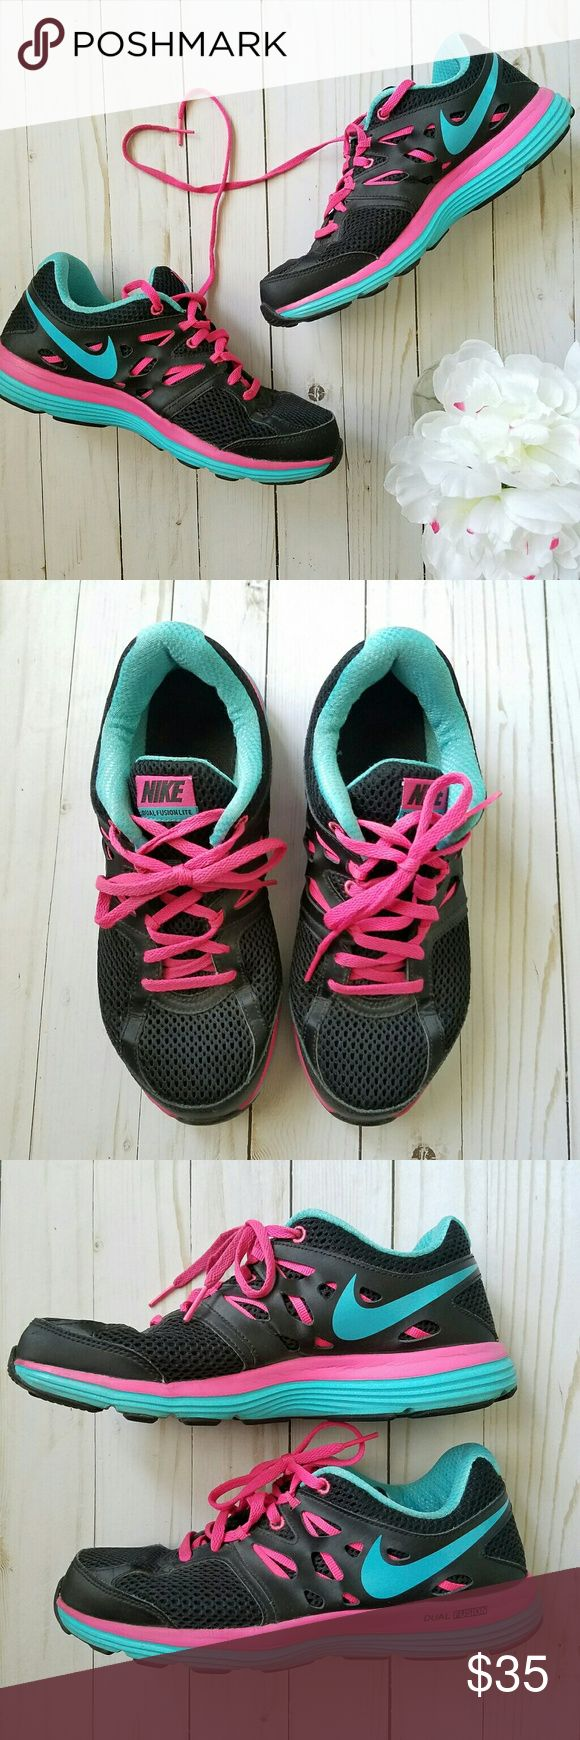 Nike Dual Fusion Lite Nike Dual Fusion Lite tennis shoes - sneakers. Womens size 8. Black, pink, and blue. Excellent condition! Nike Shoes Athletic Shoes